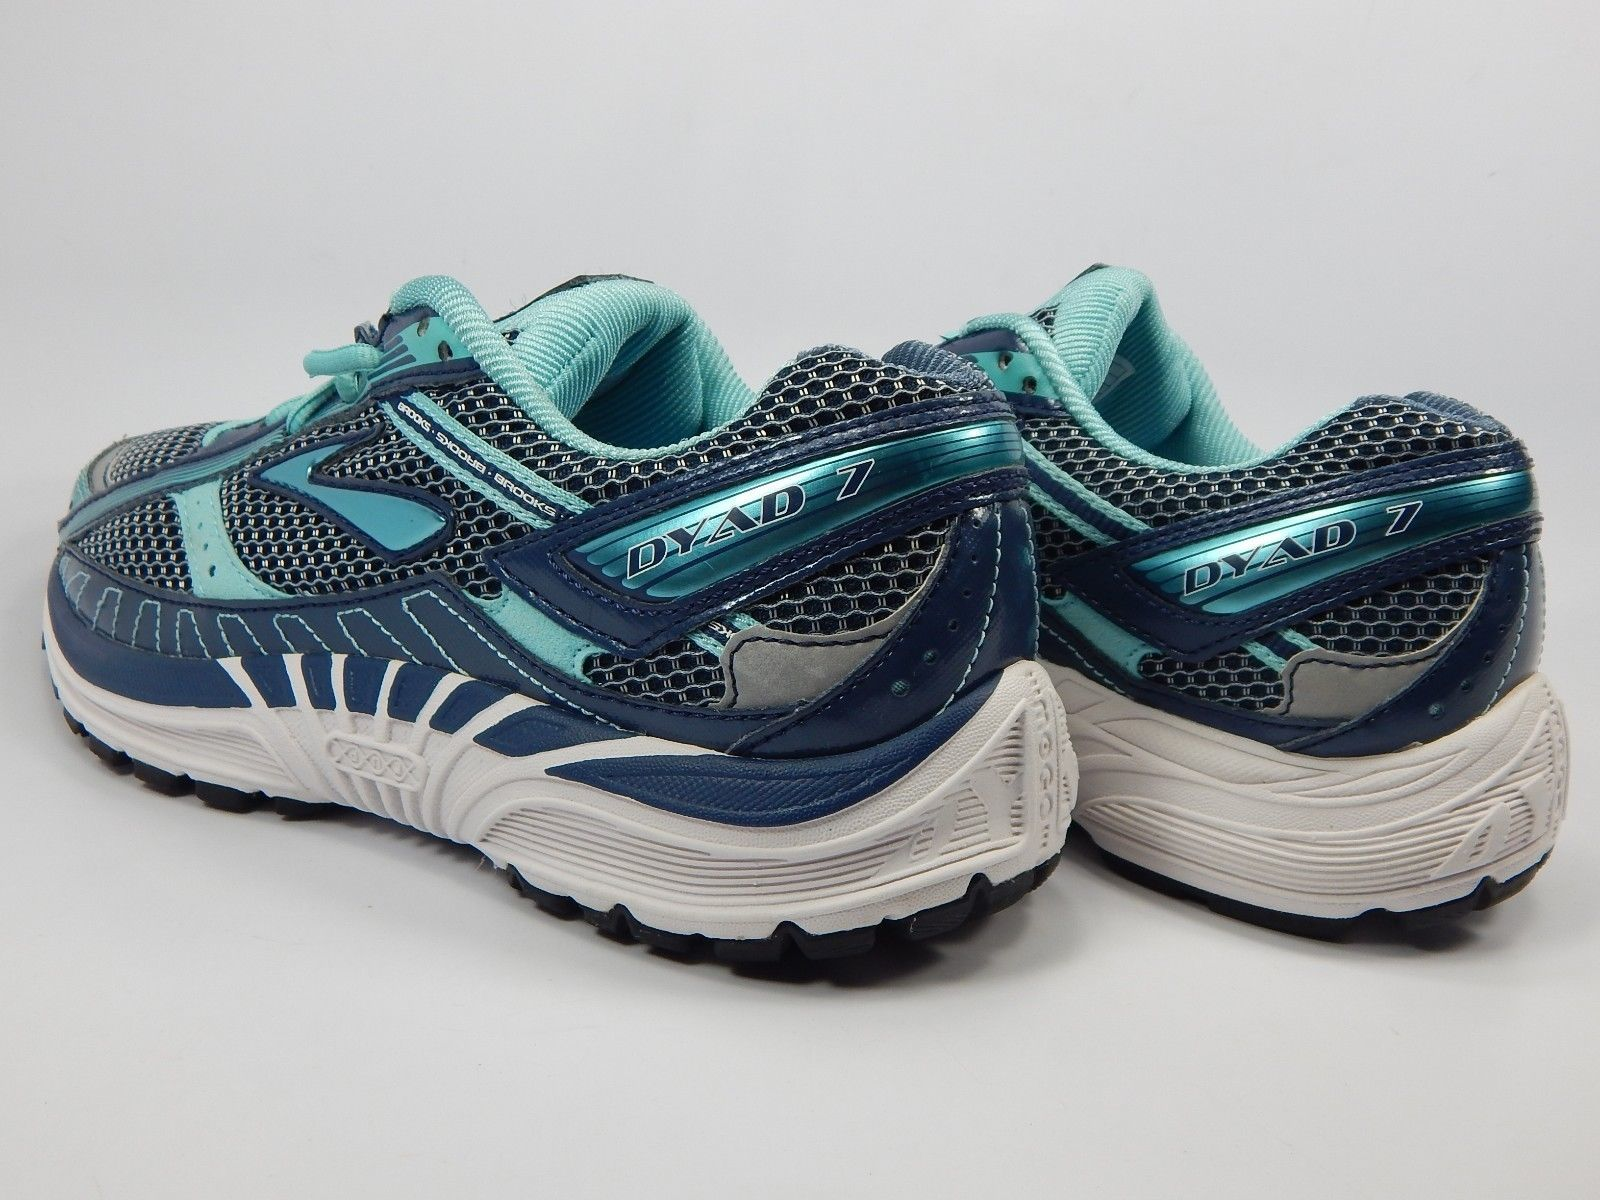 Brooks Dyad 7 Size US 8 2E EXTRA WIDE EU 39 Women's Running Shoes 1201152E944 image 4